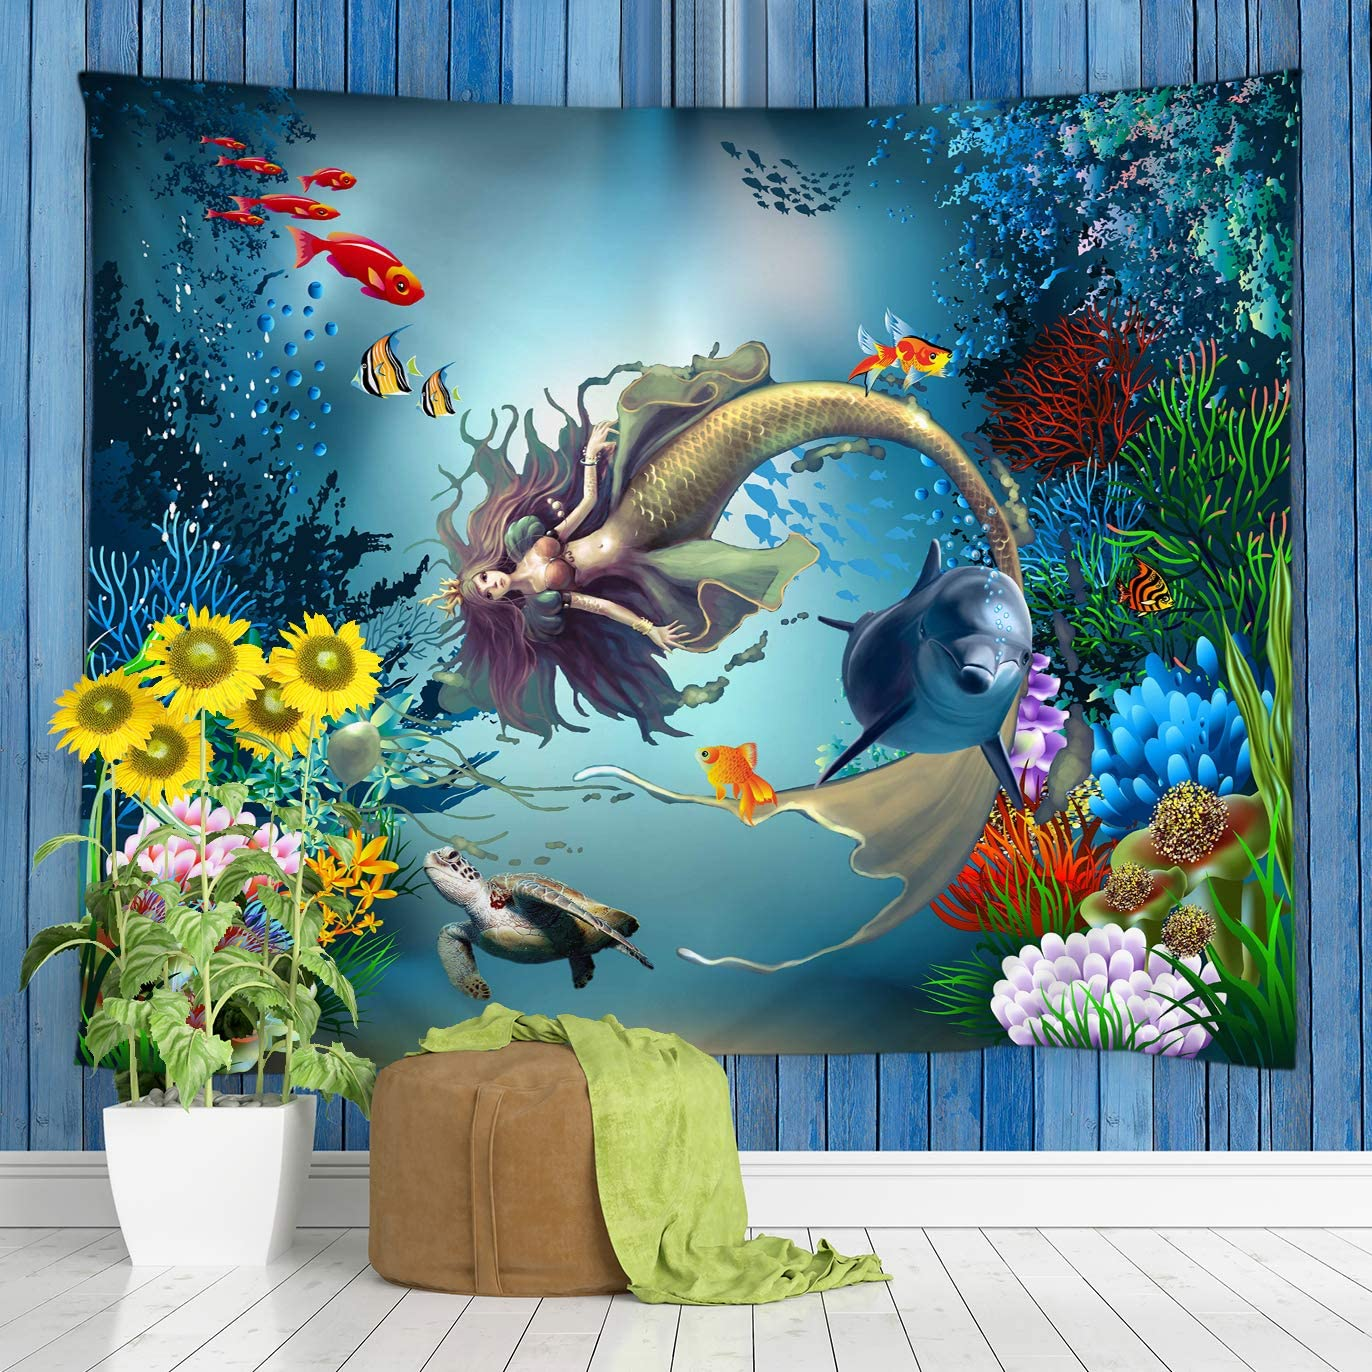 jingjiji Mermaid Tapestry Fantasy Underwater World Cartoon Dolphin Sea Turtle Tropical Fish Colorful Coral Reef Marine Wall Hanging Bedroom Living Room Polyester Fabric 90 x 71 Inch Blue